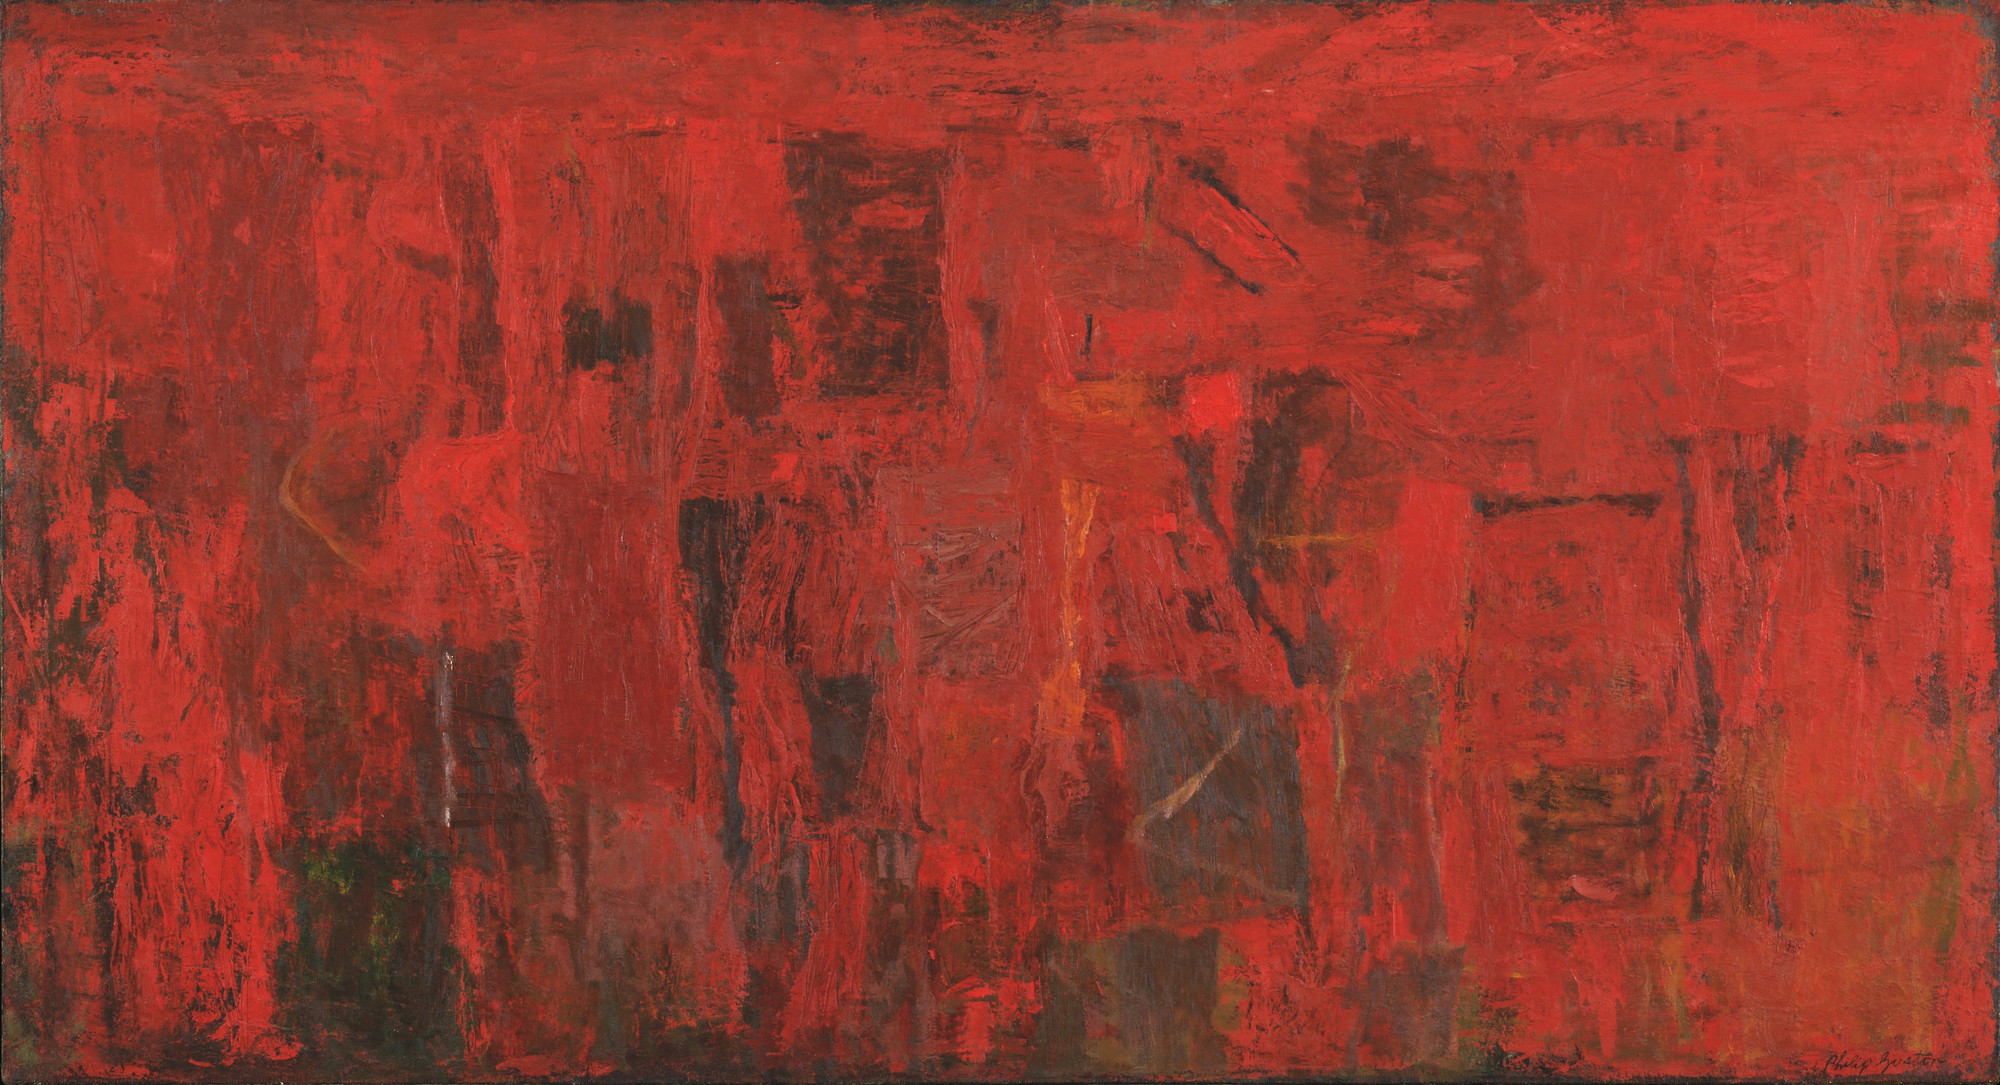 Philip Guston. Red Painting. 1950